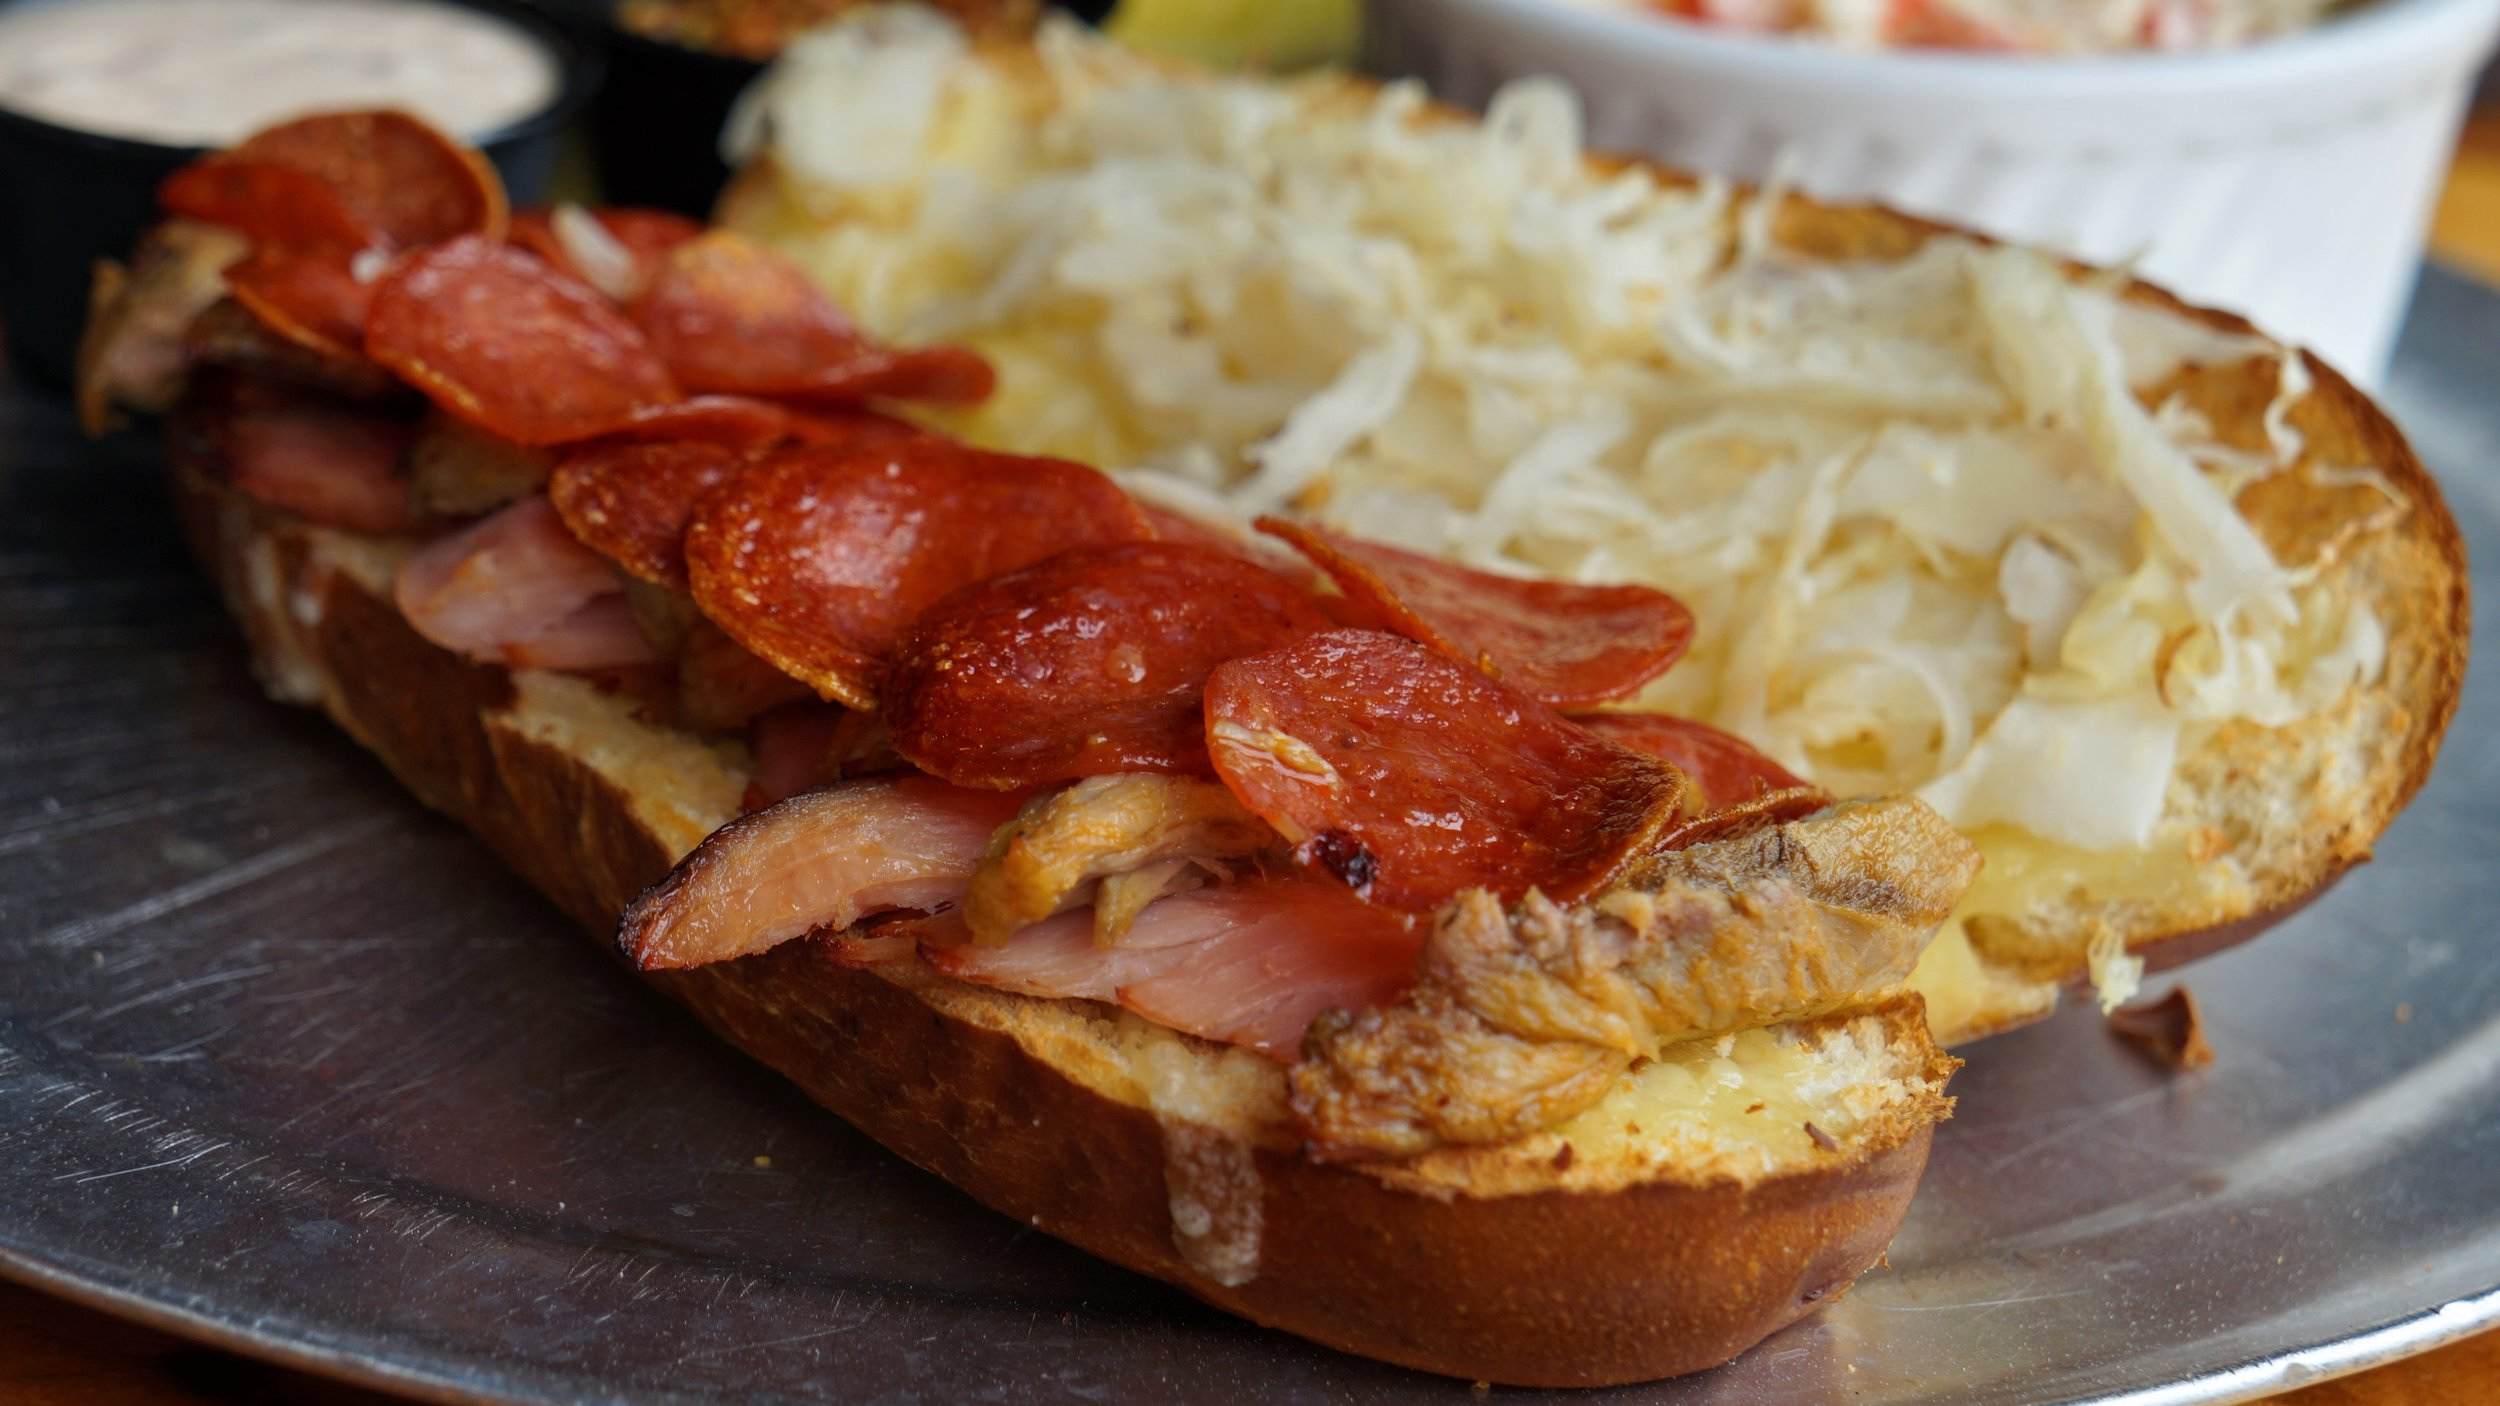 Reubano sandwich - Our twist on a Reuben and a Cuban.